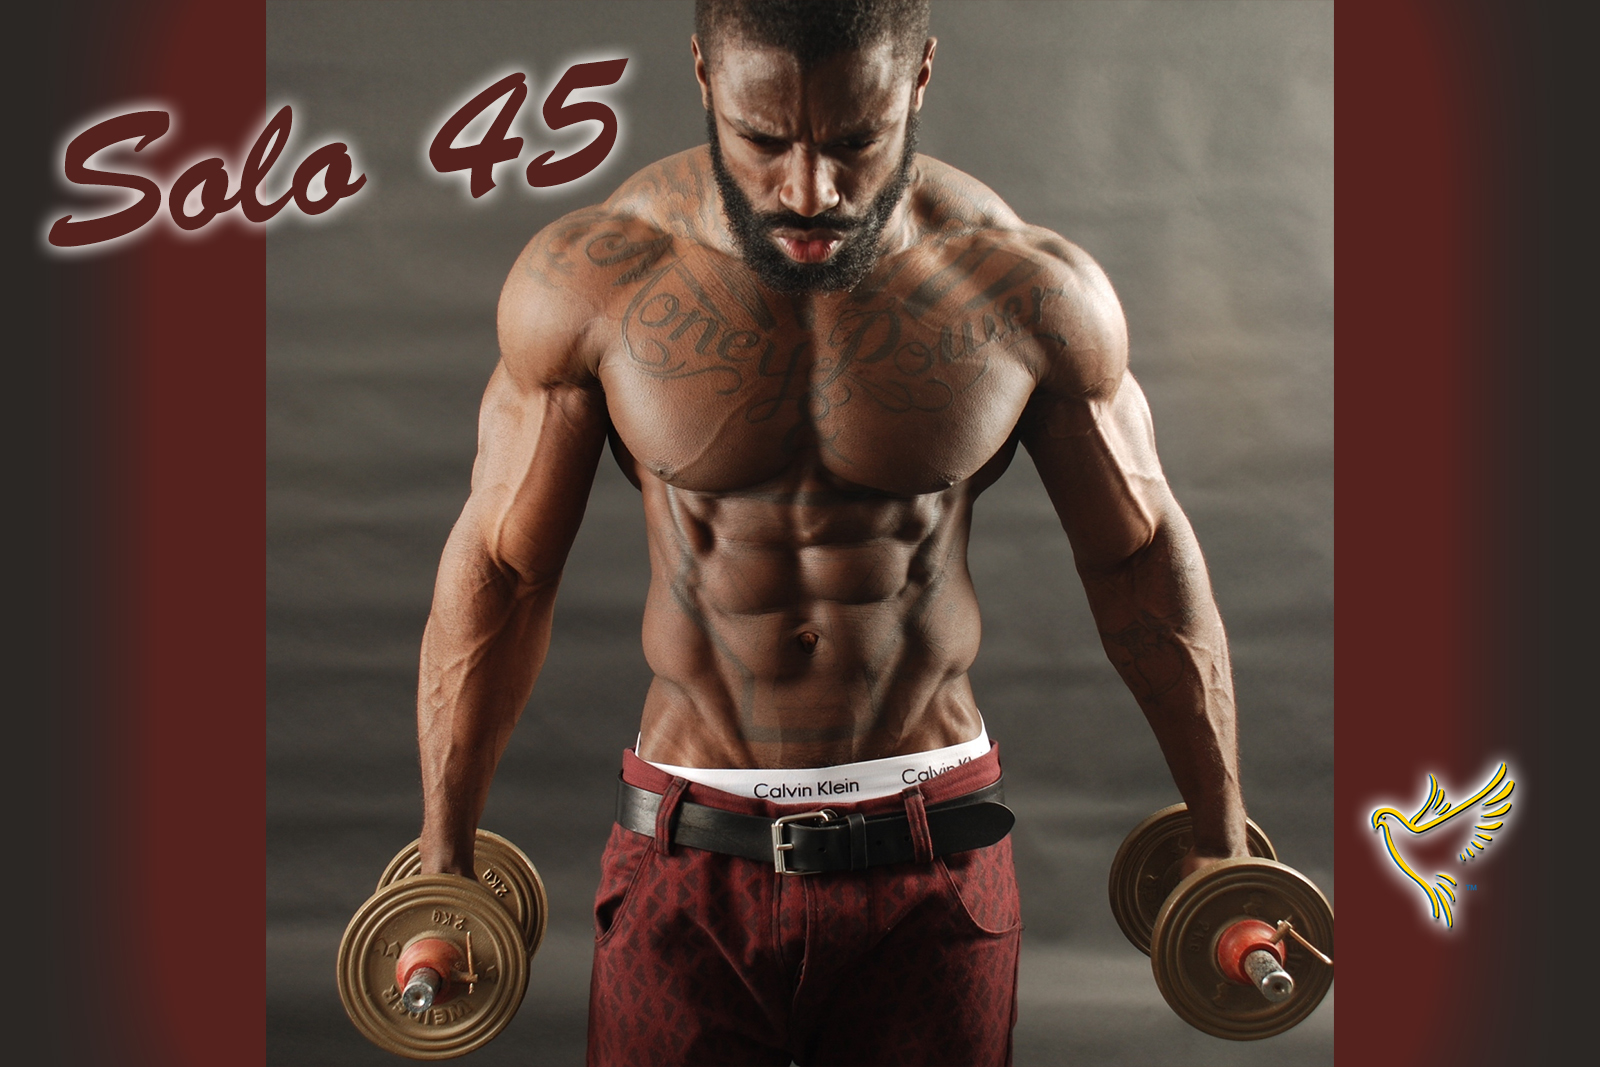 WATCH: SOLO 45 - 'LIVE, LOVE, LIFE' FITNESS SESSIONS (PART 1 & 2)